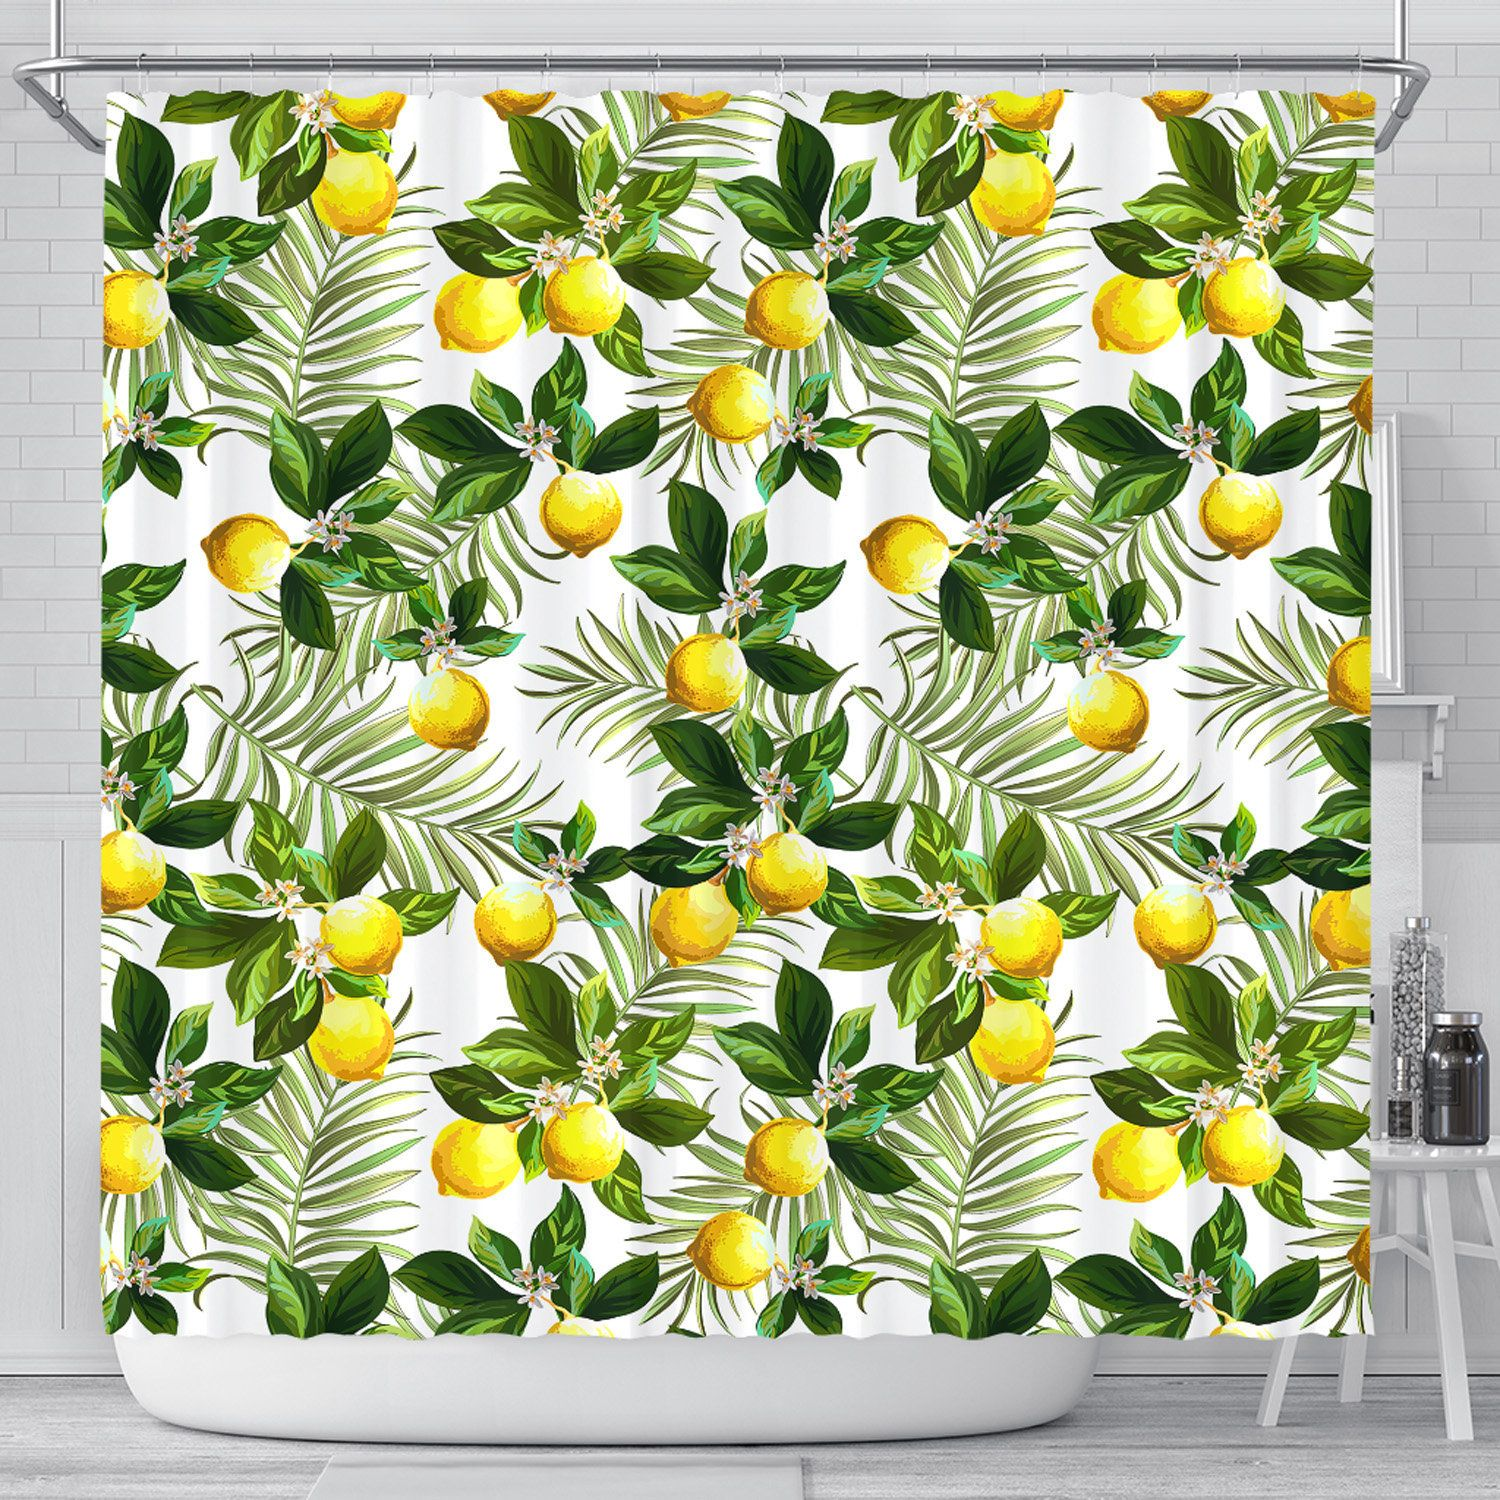 Lemon Shower Curtain Citrus Shower Curtains Lemons Bathroom